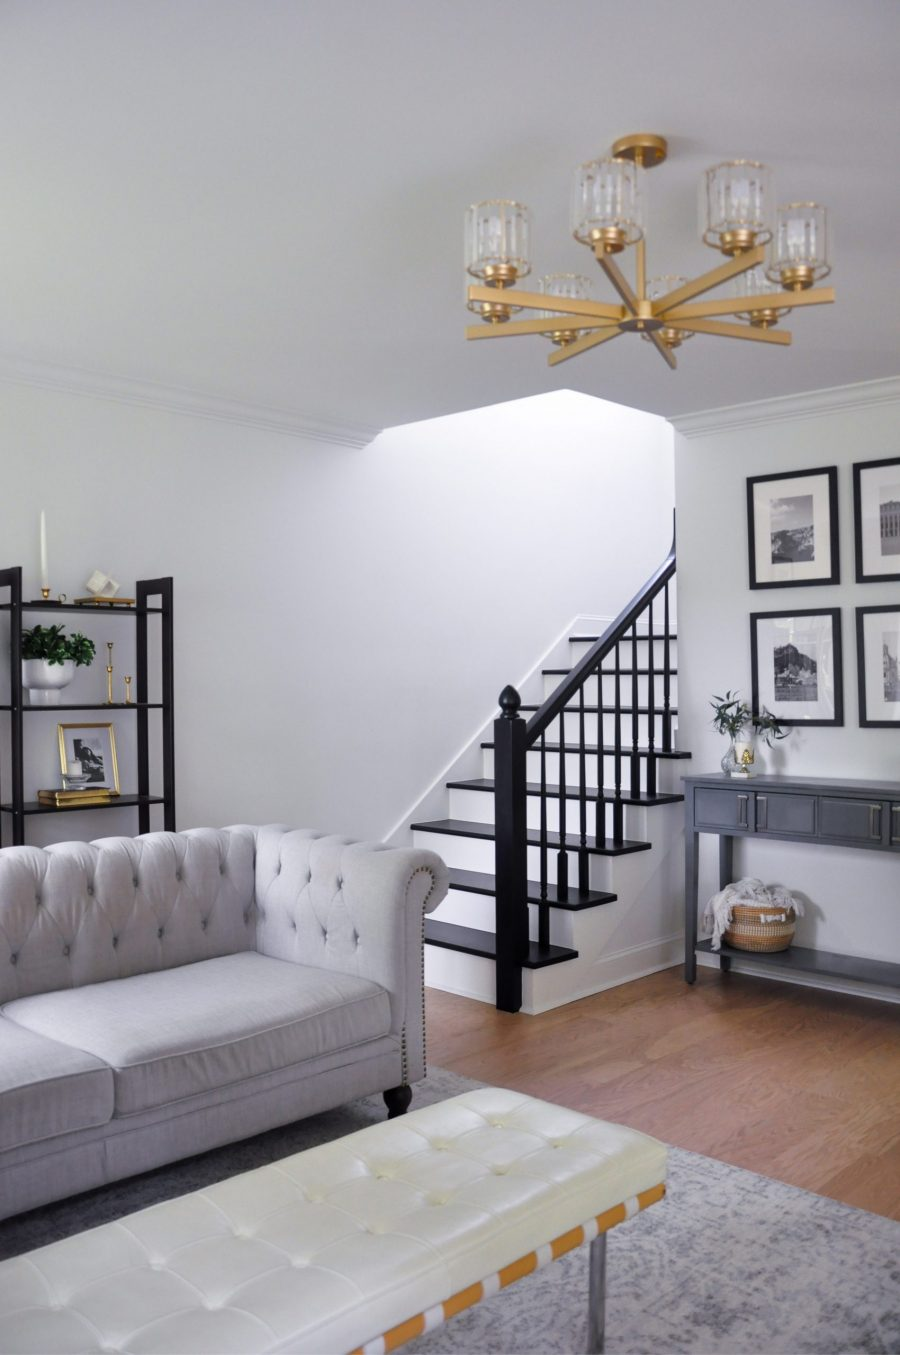 Staircase Remodel: What We Did and Would We Do It Again